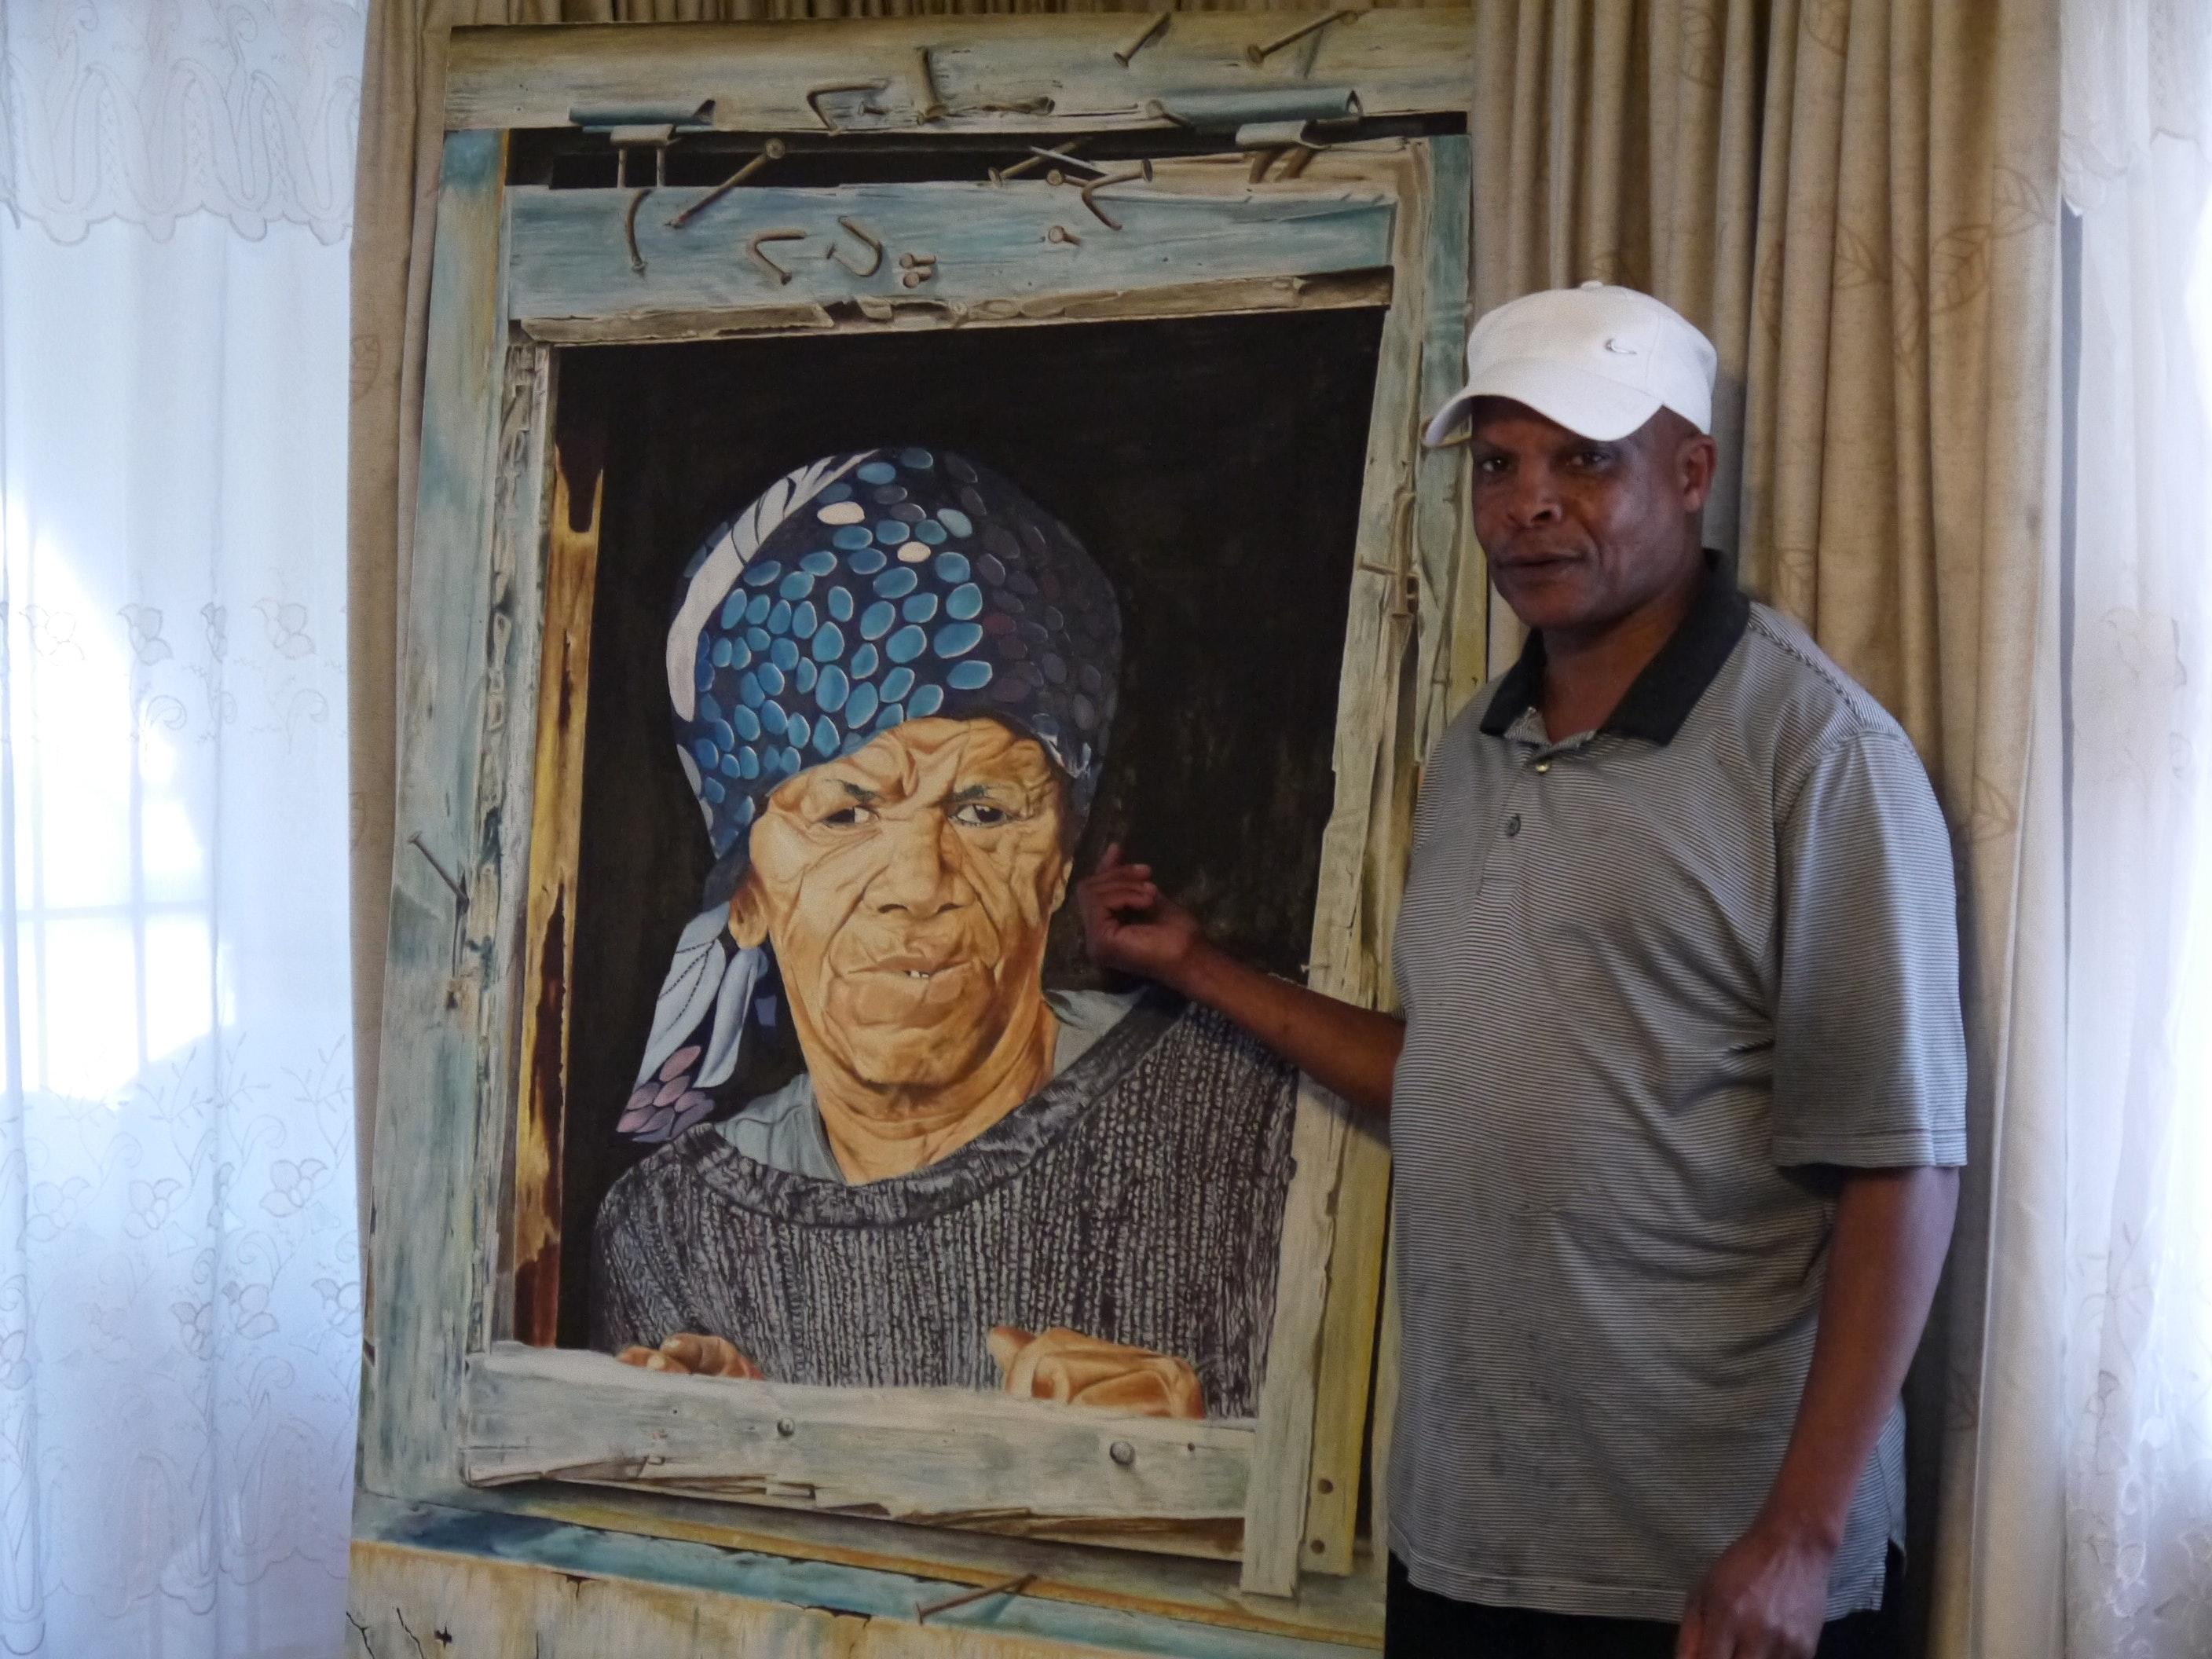 Velile Soha showcases his work in his own home on the tour.